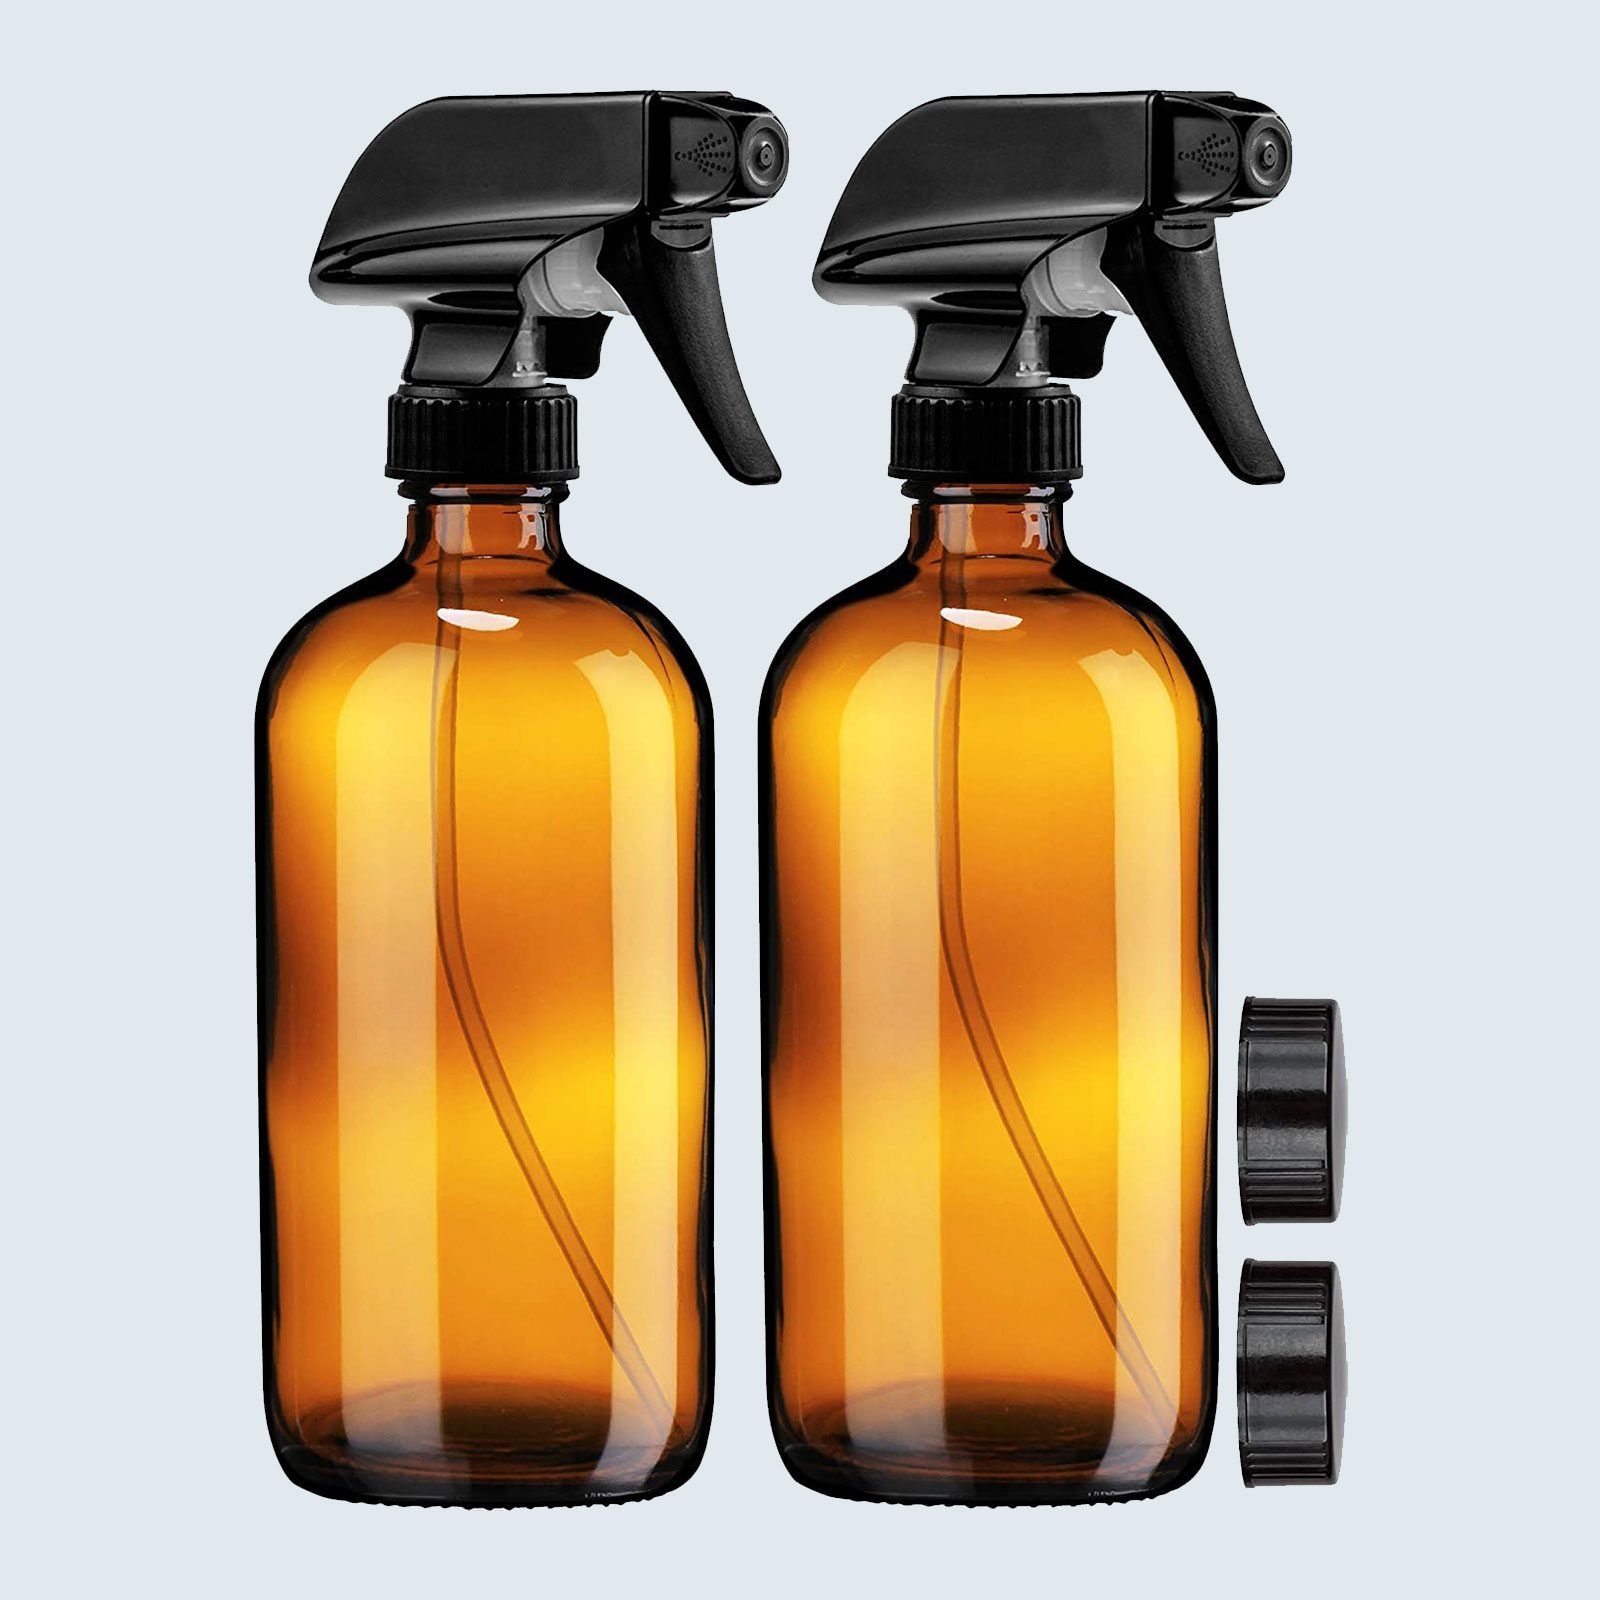 Sally's Organics Amber Glass Spray Bottles